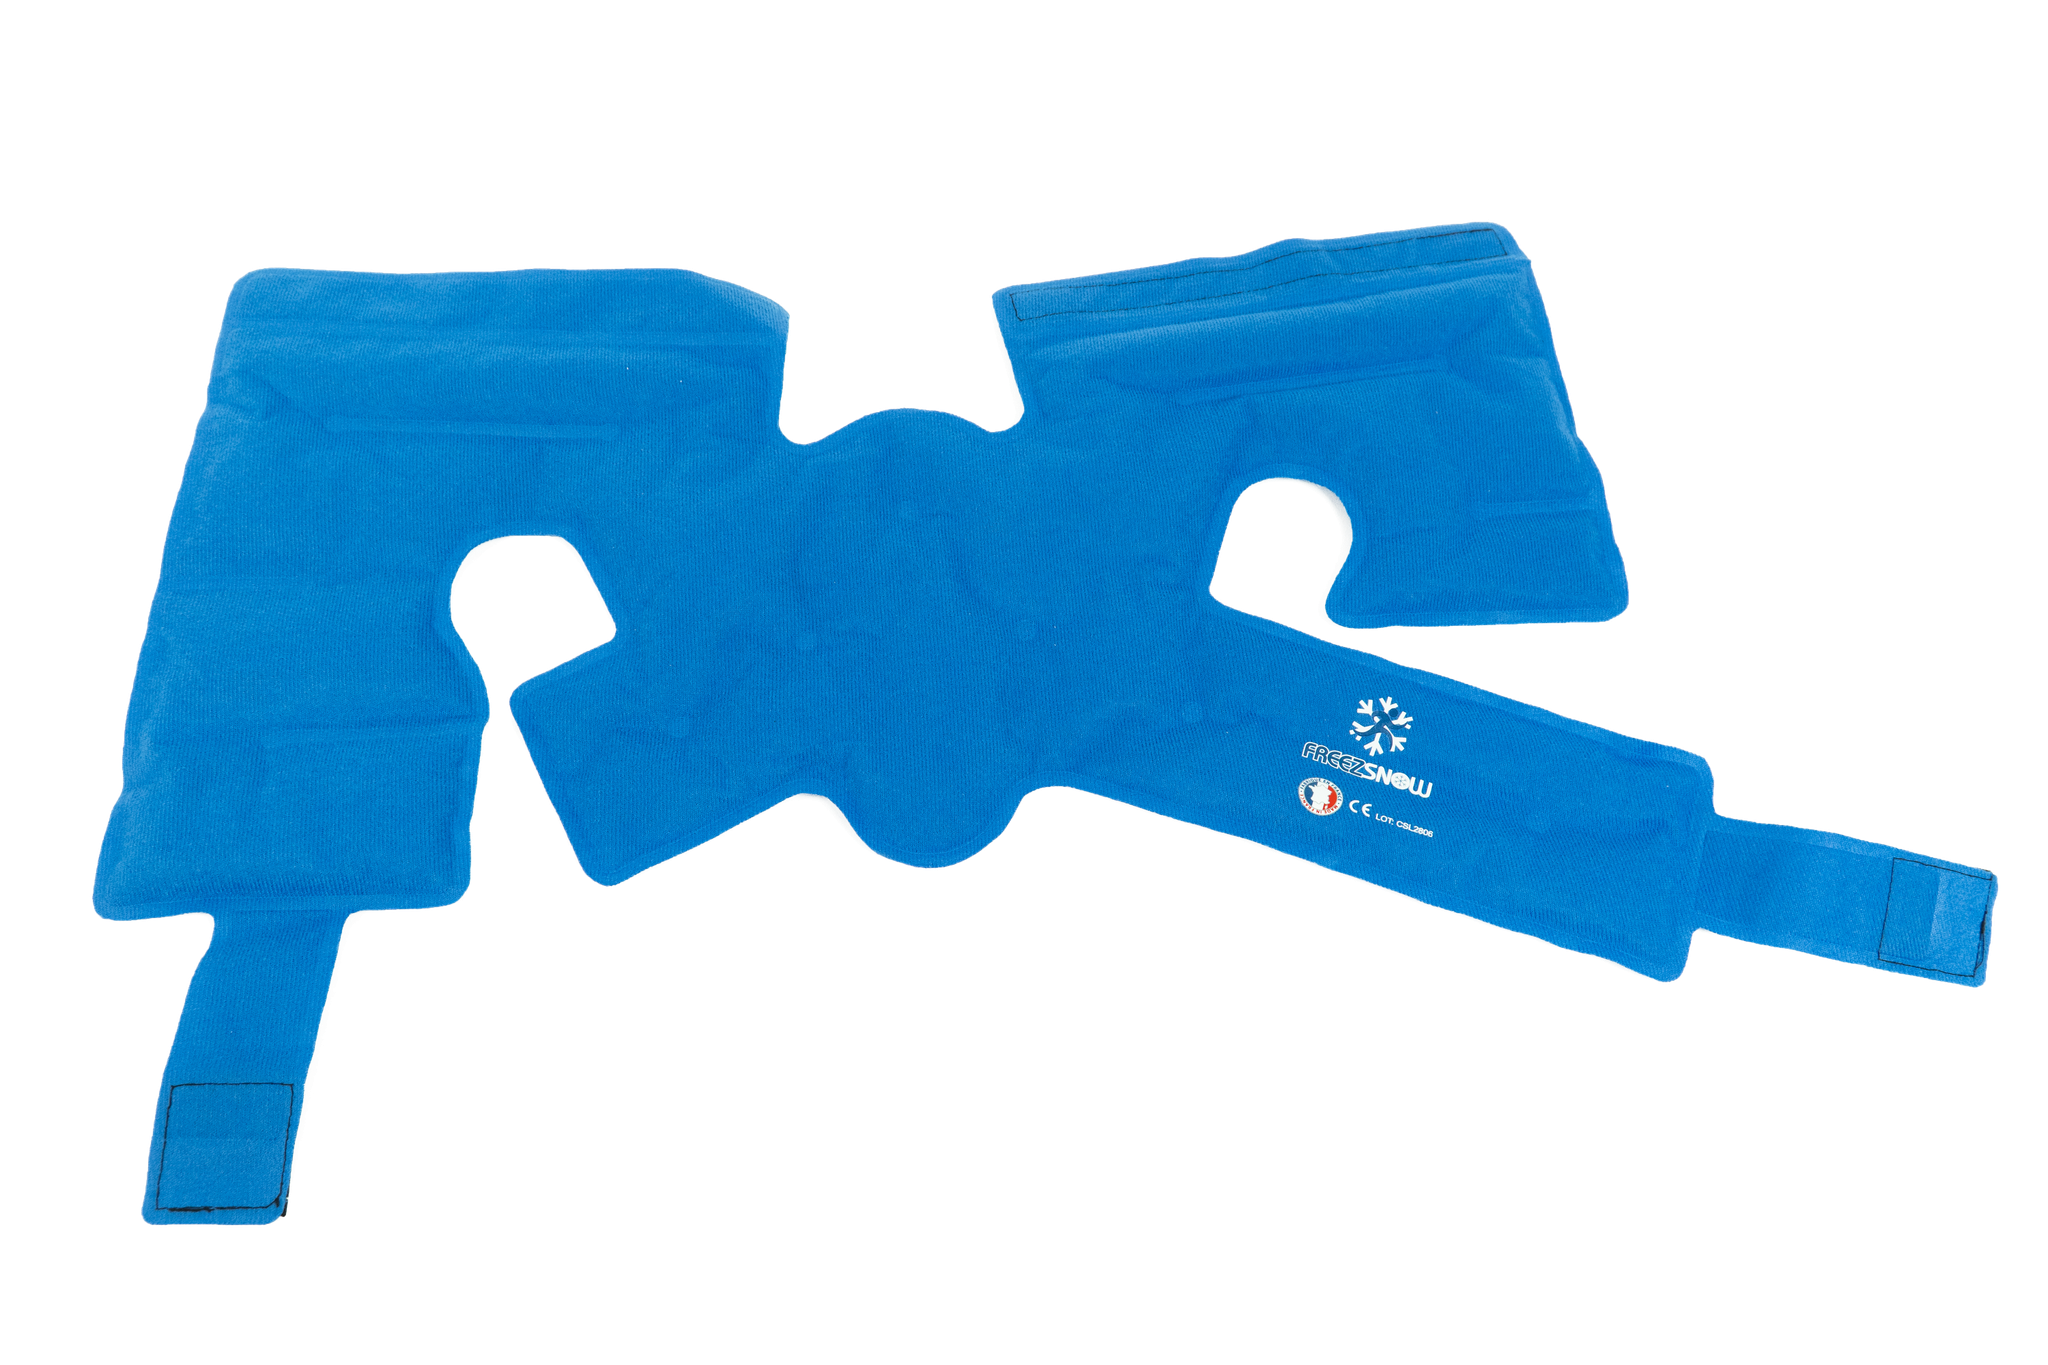 X2: It comes with two long-lasting cold packs Freezsnow® (including a spare set).